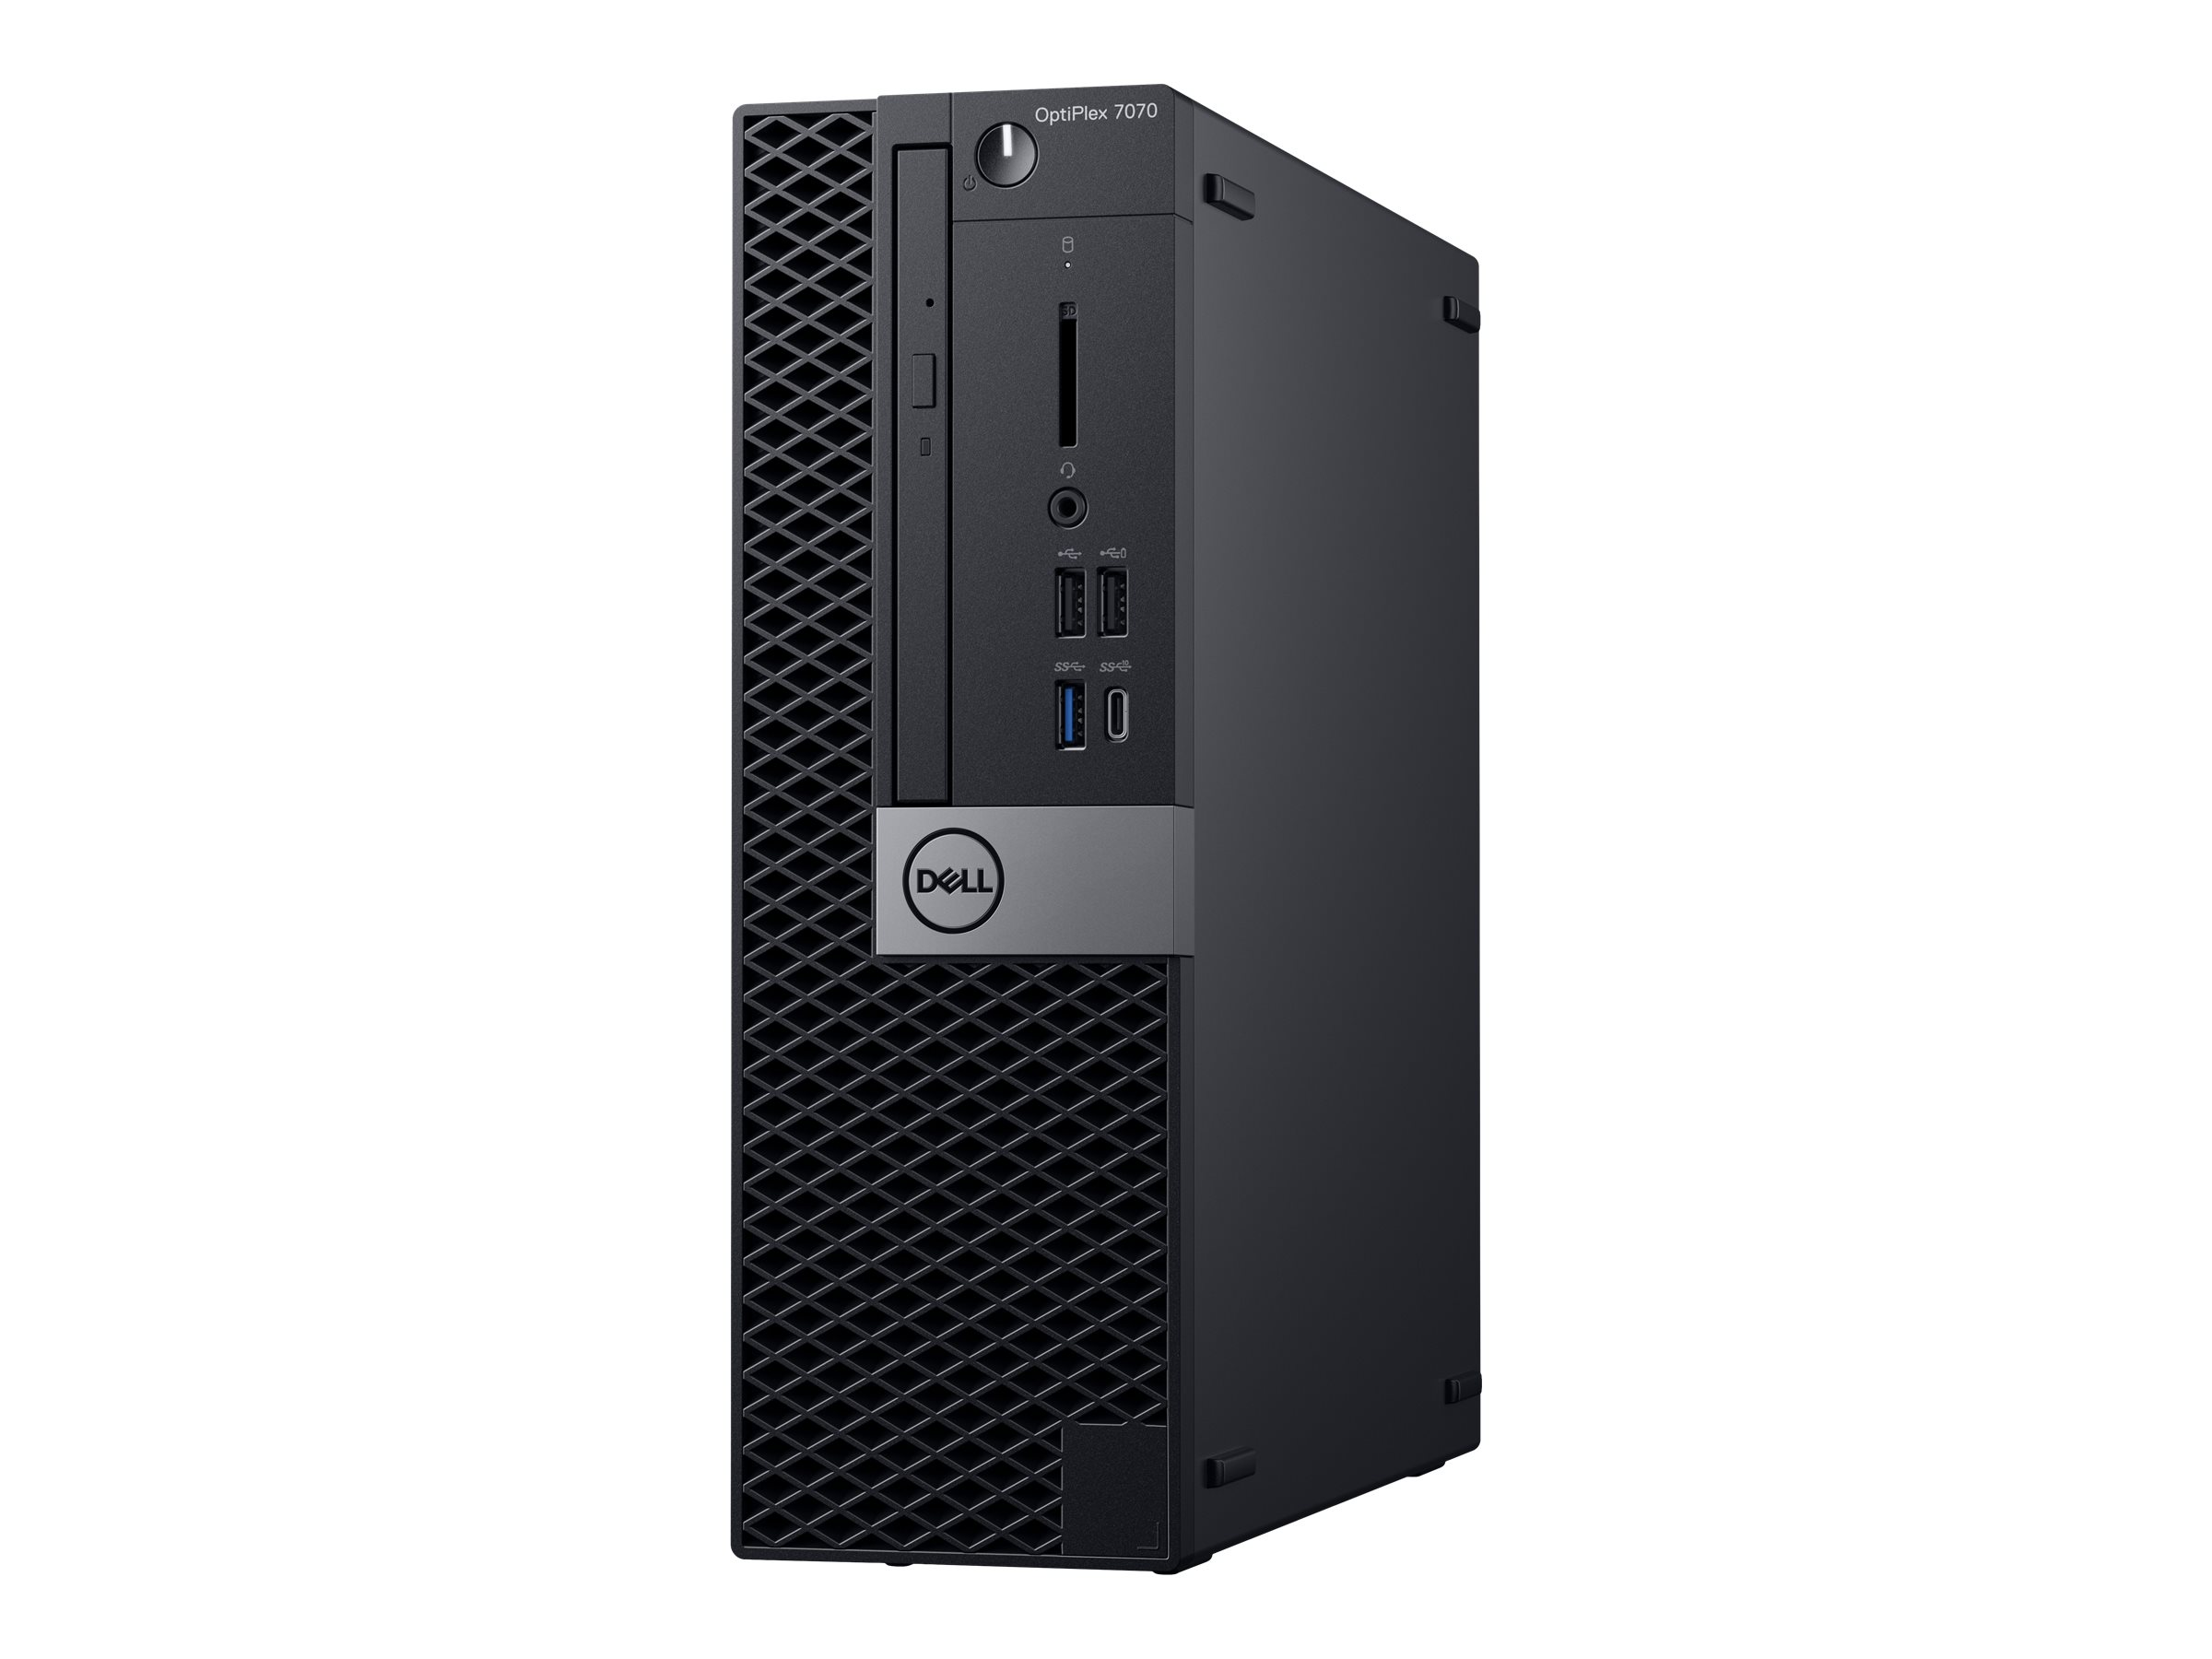 Dell OptiPlex 7070 - SFF - Core i7 9700 3 GHz - 8 GB - 1 TB - with 3-year ProSupport NBD